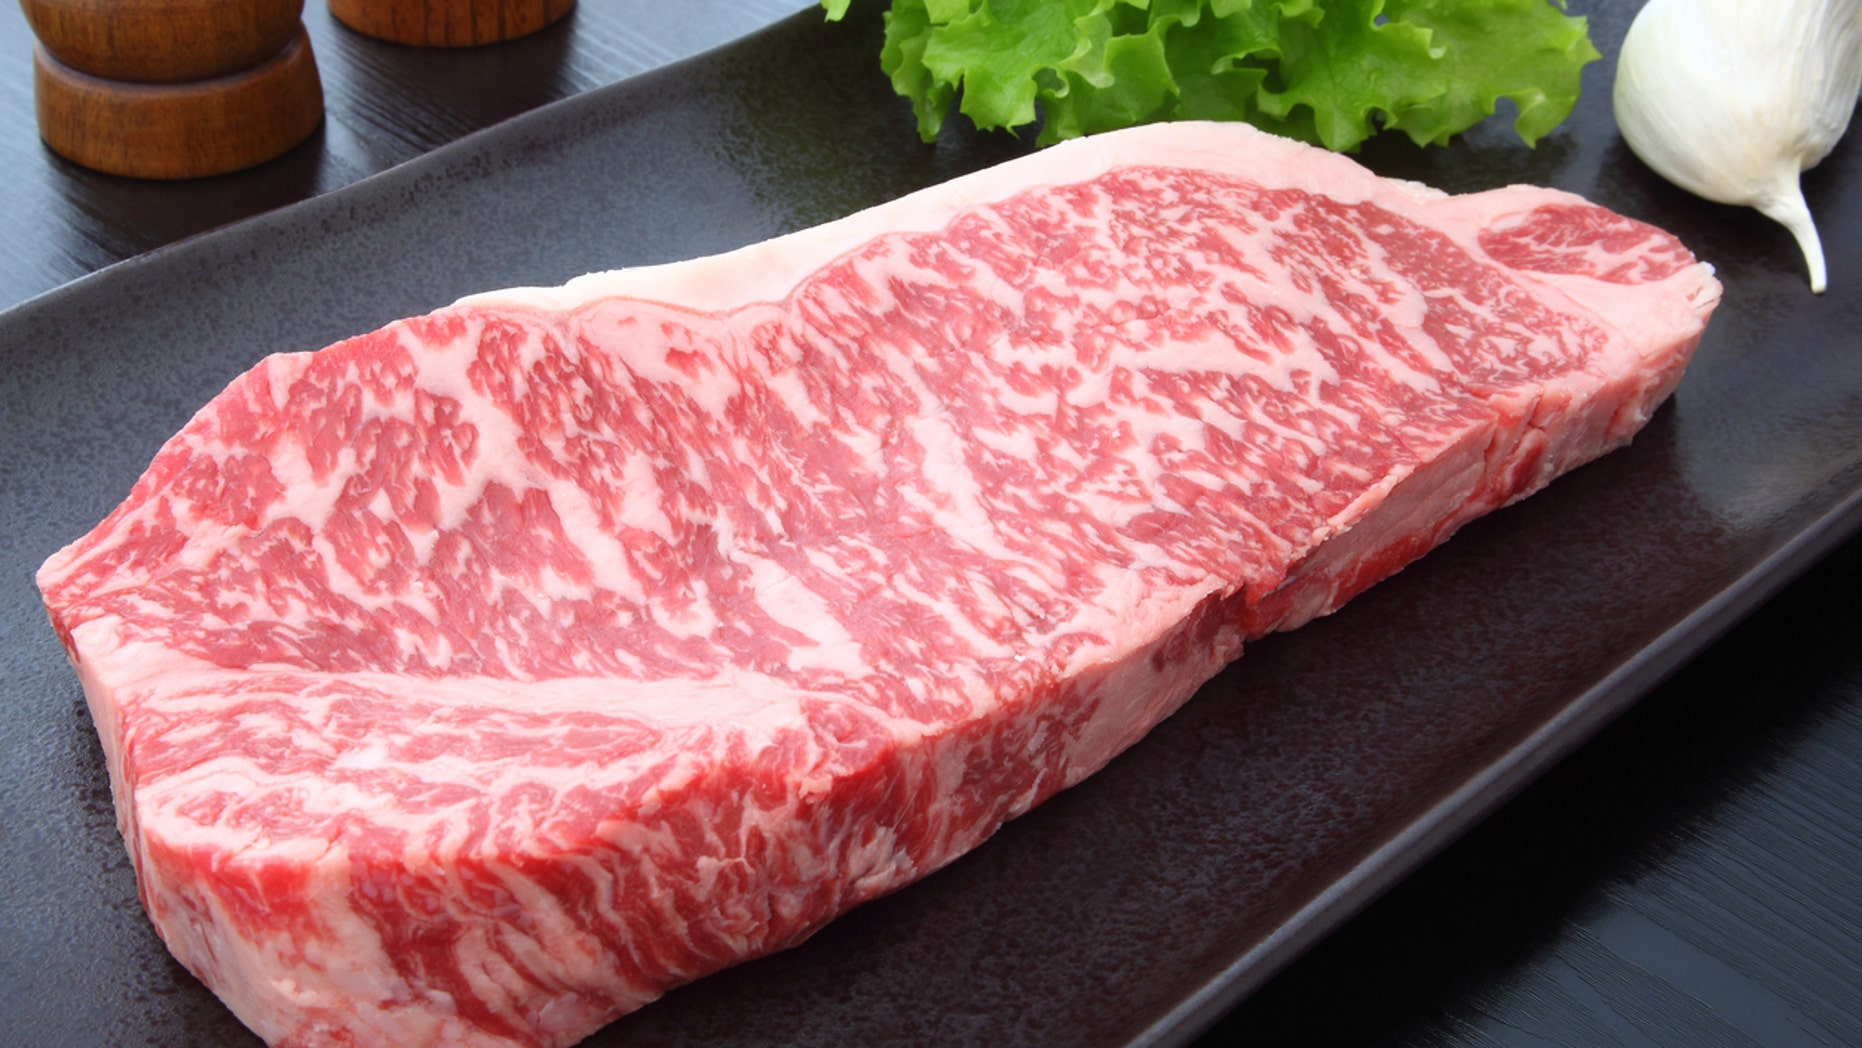 Less beef, more beans – experts say world needs new diet